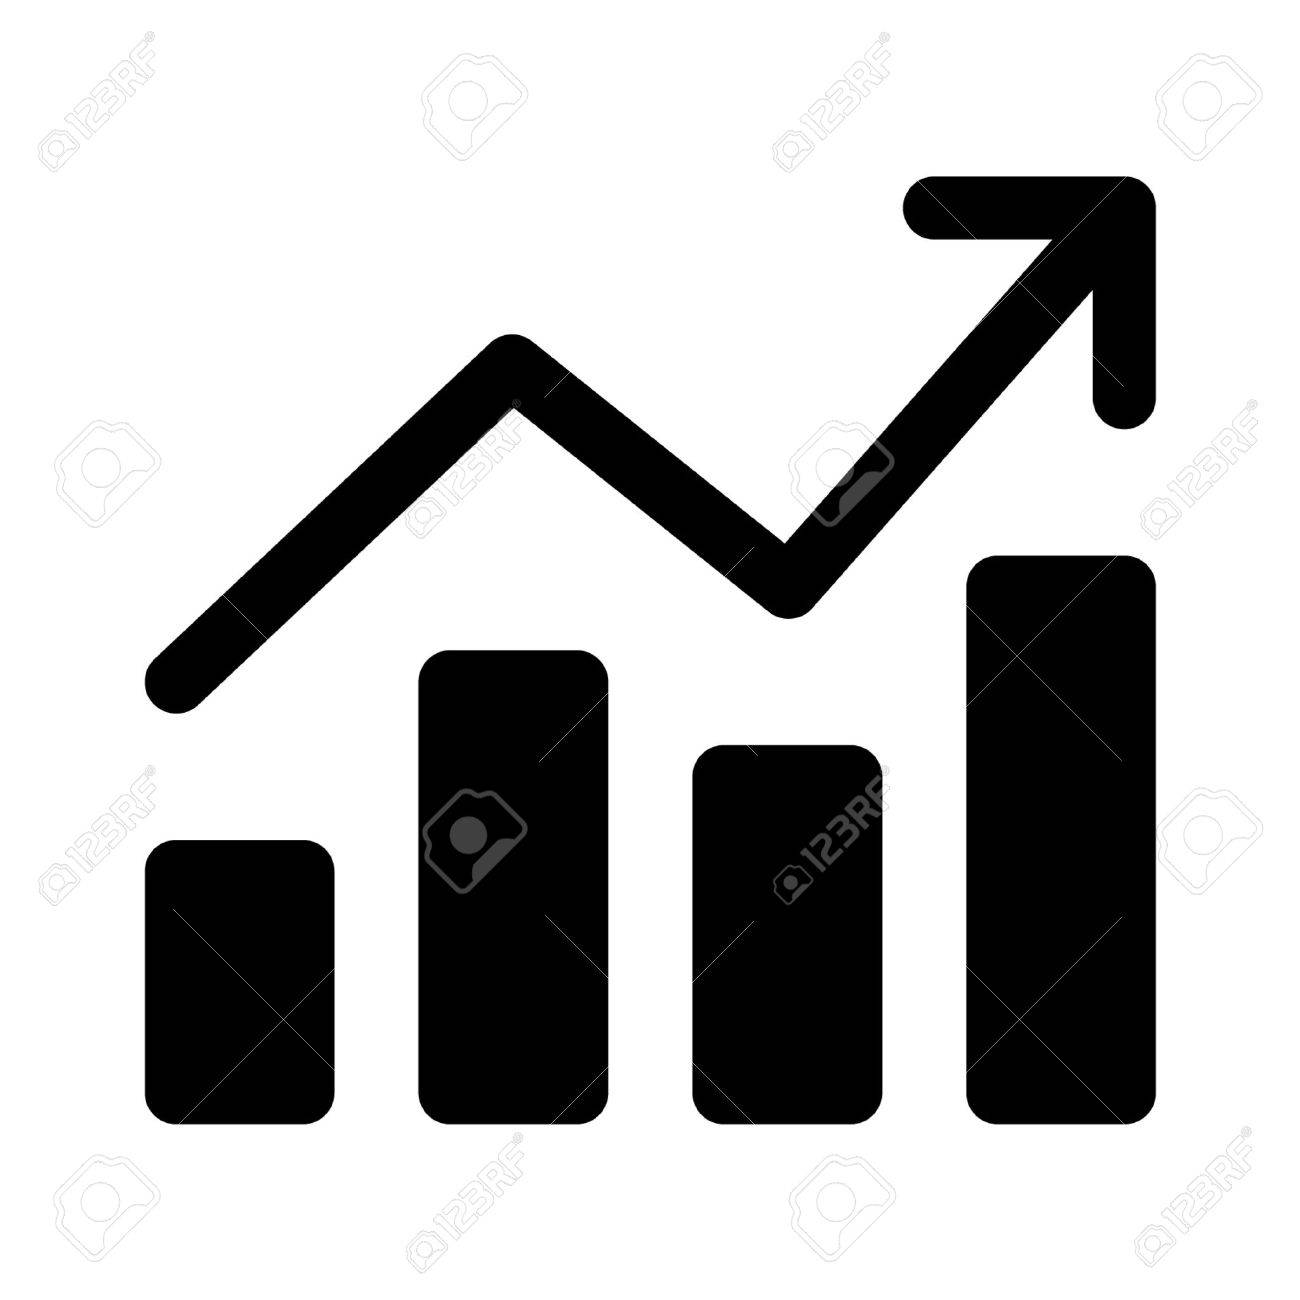 Growth chart graph flat art icon for apps and websites - 42560390